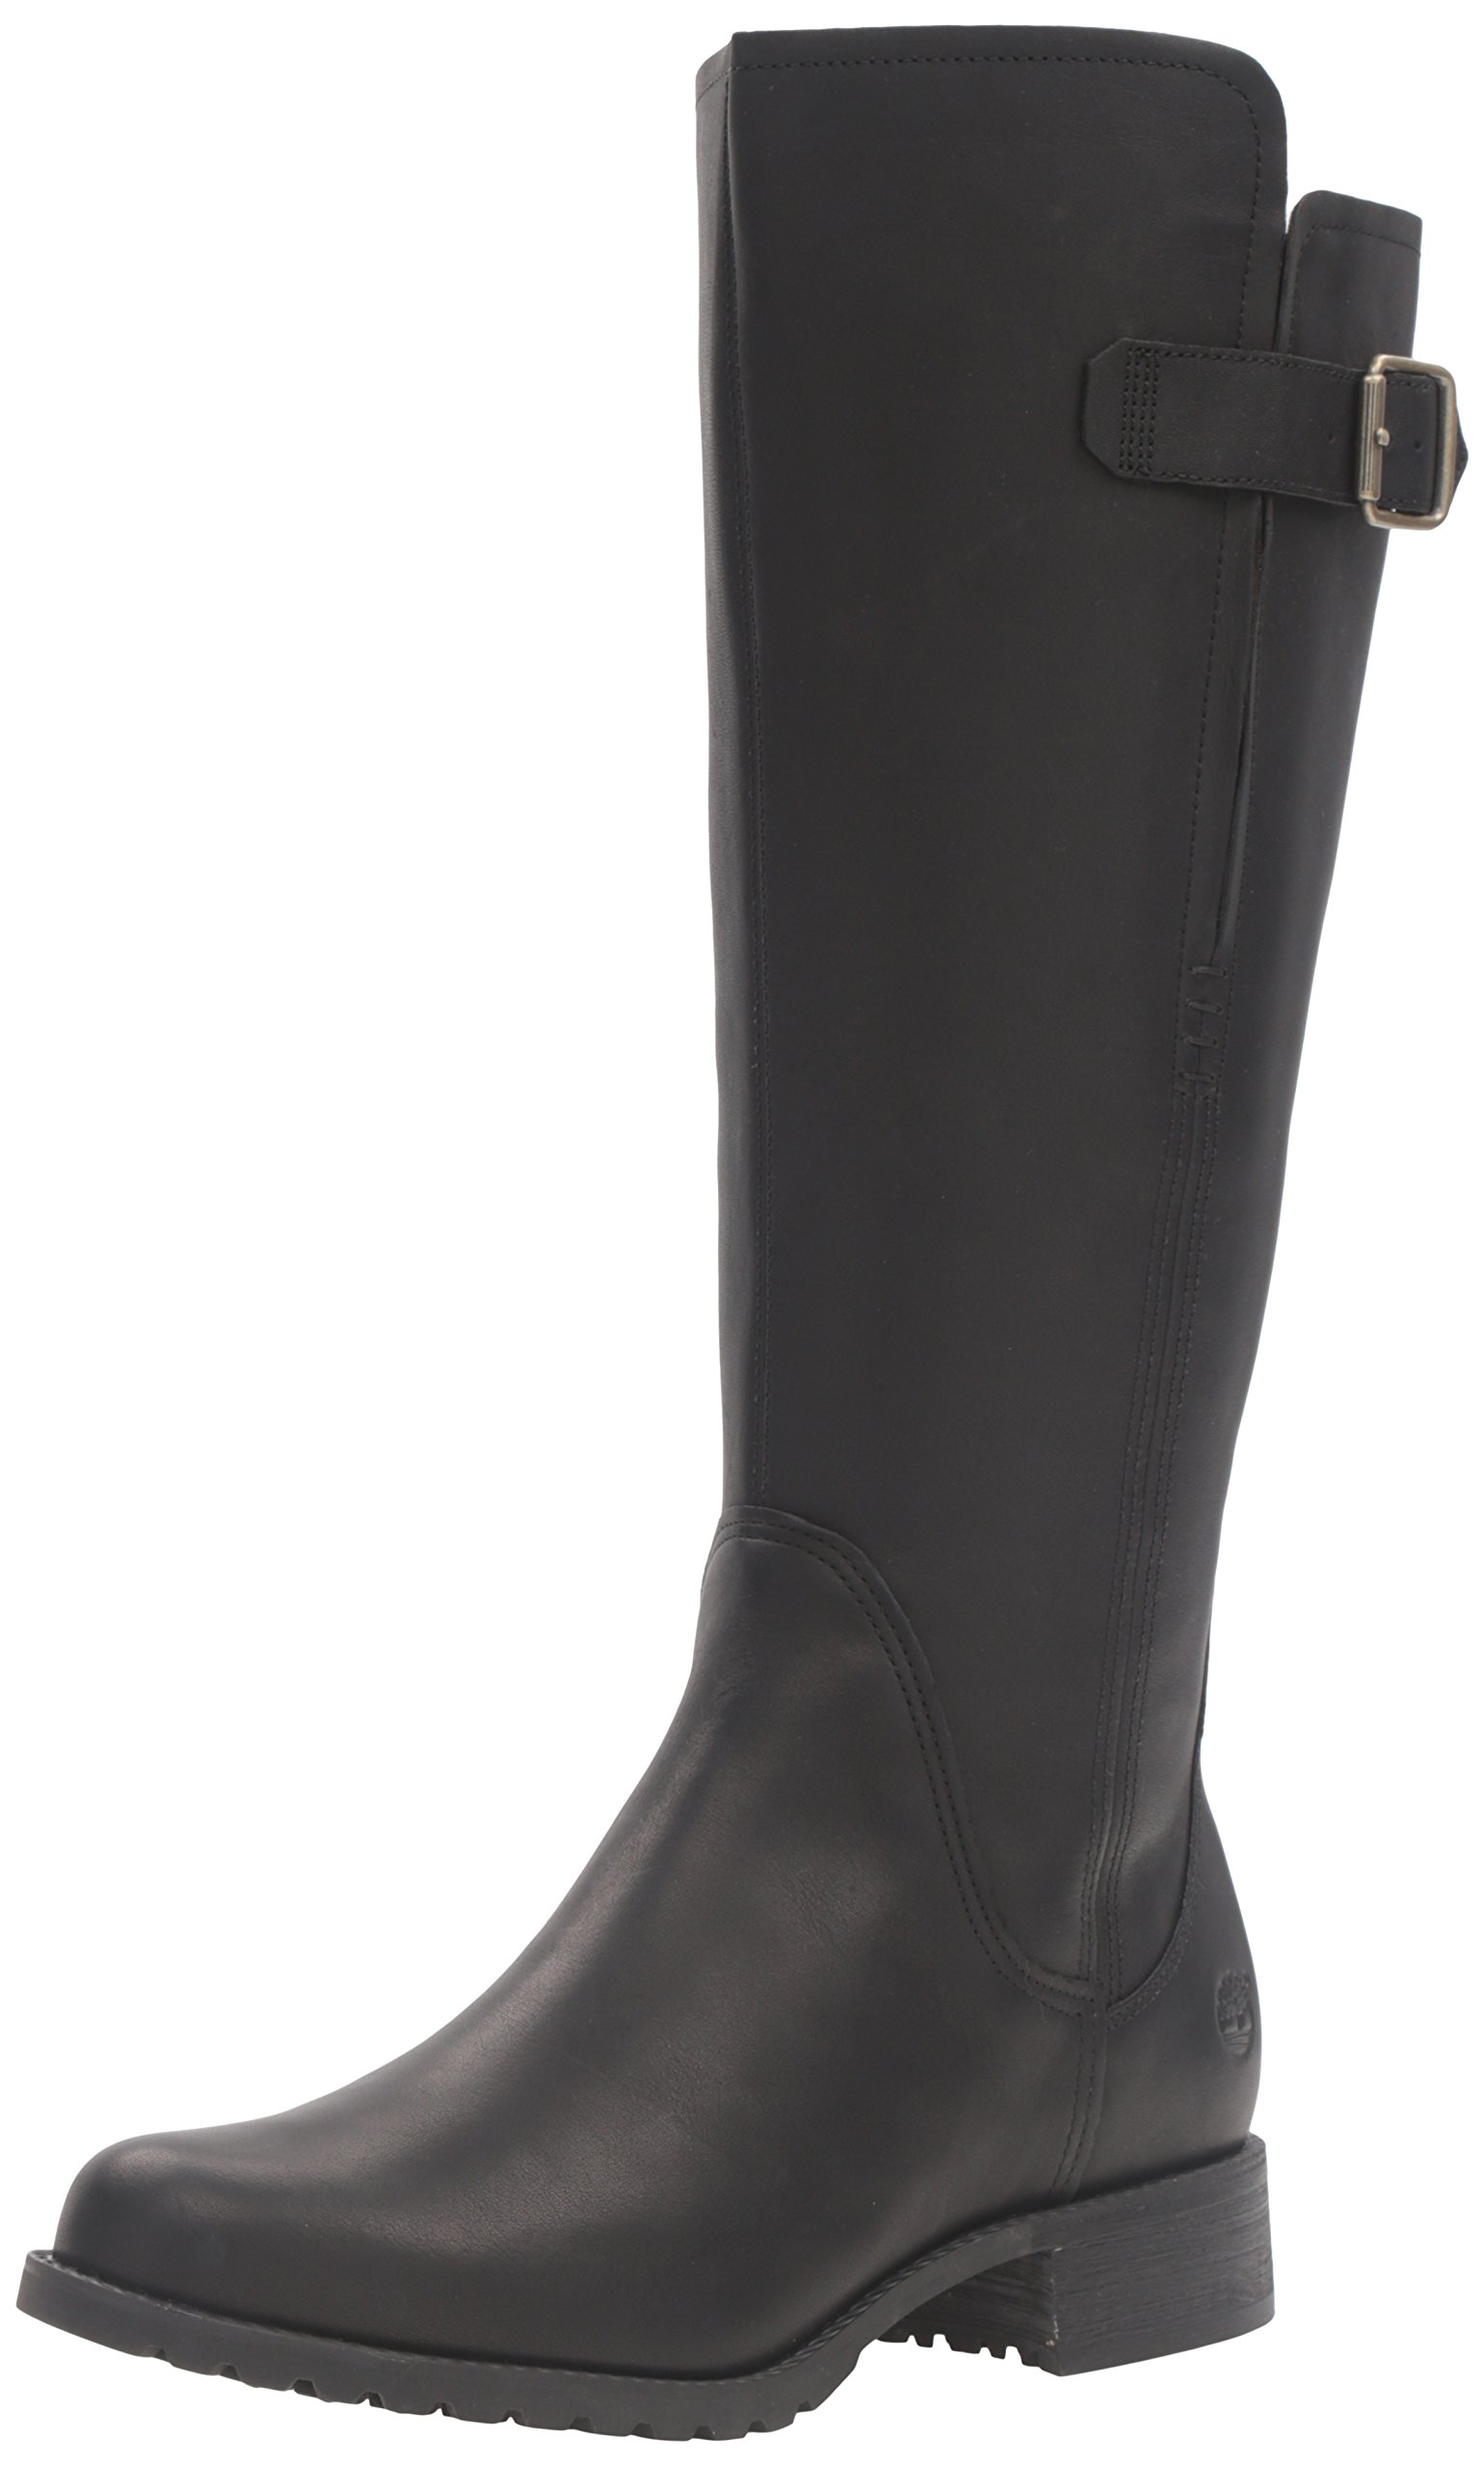 Timberland Women's Banfield Tall All Fit WP Riding Boot , Jet Black Forty, 8 M US